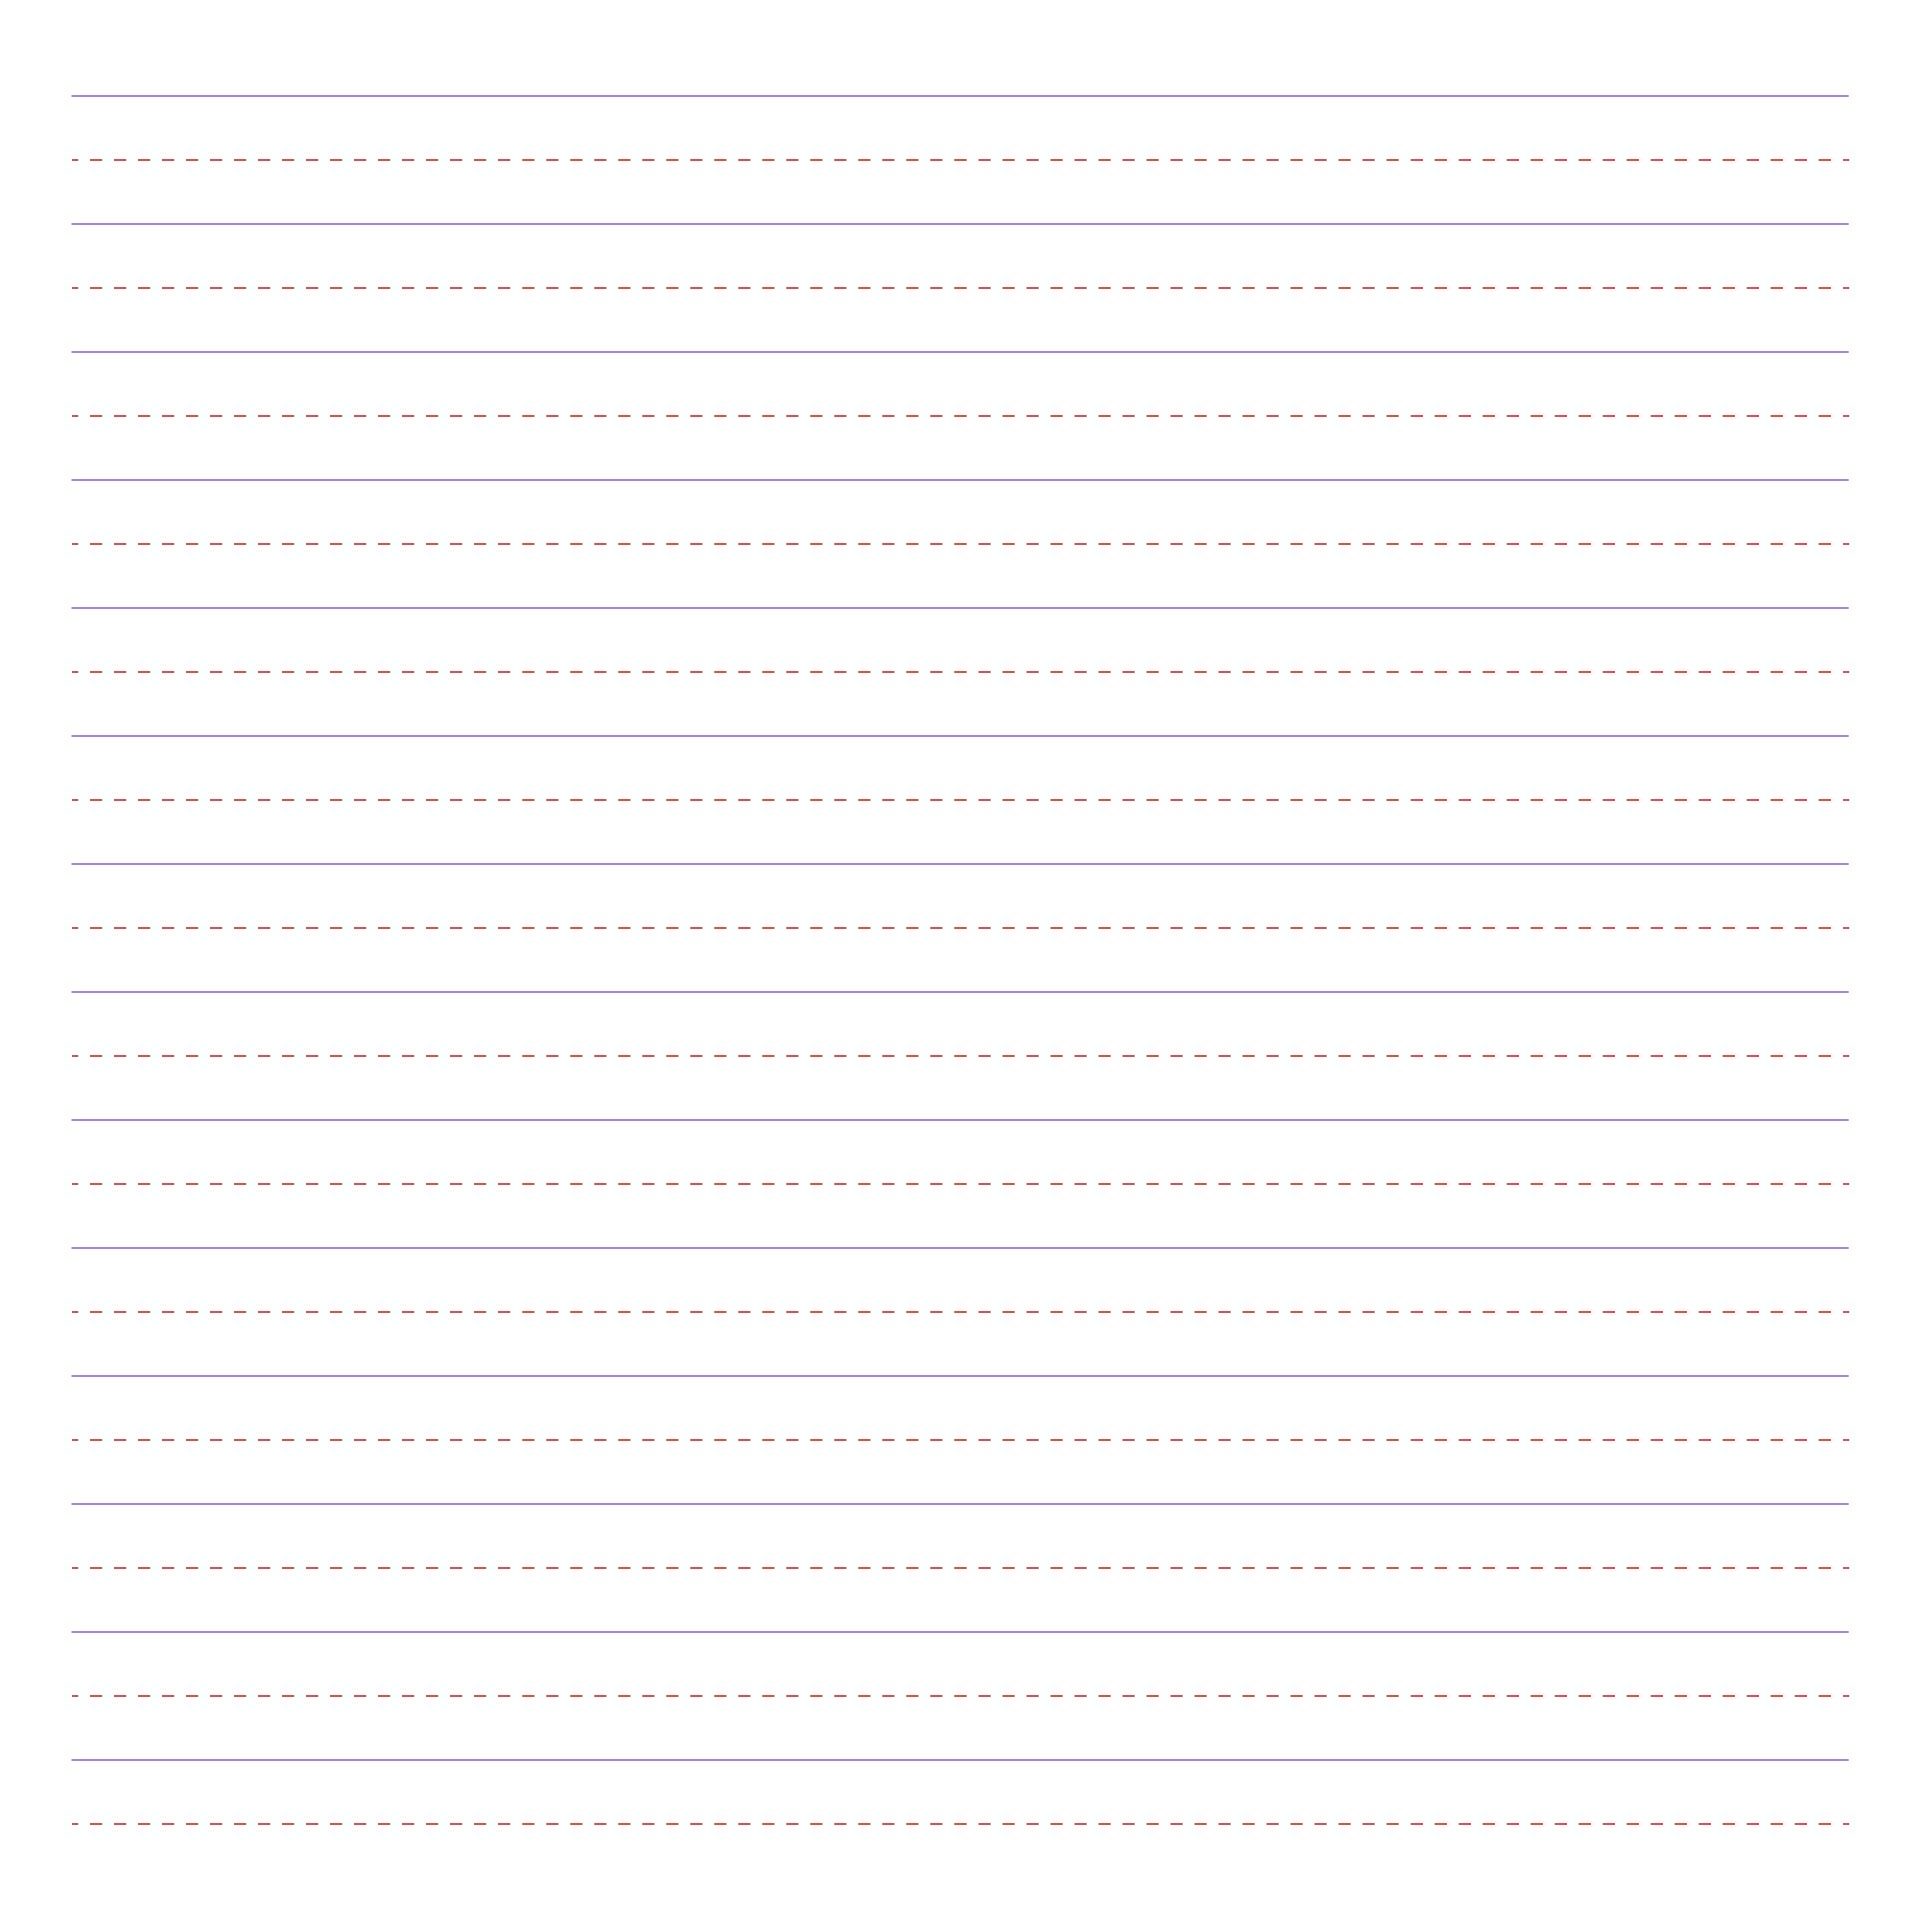 4 Images of Second Grade Writing Paper Printable